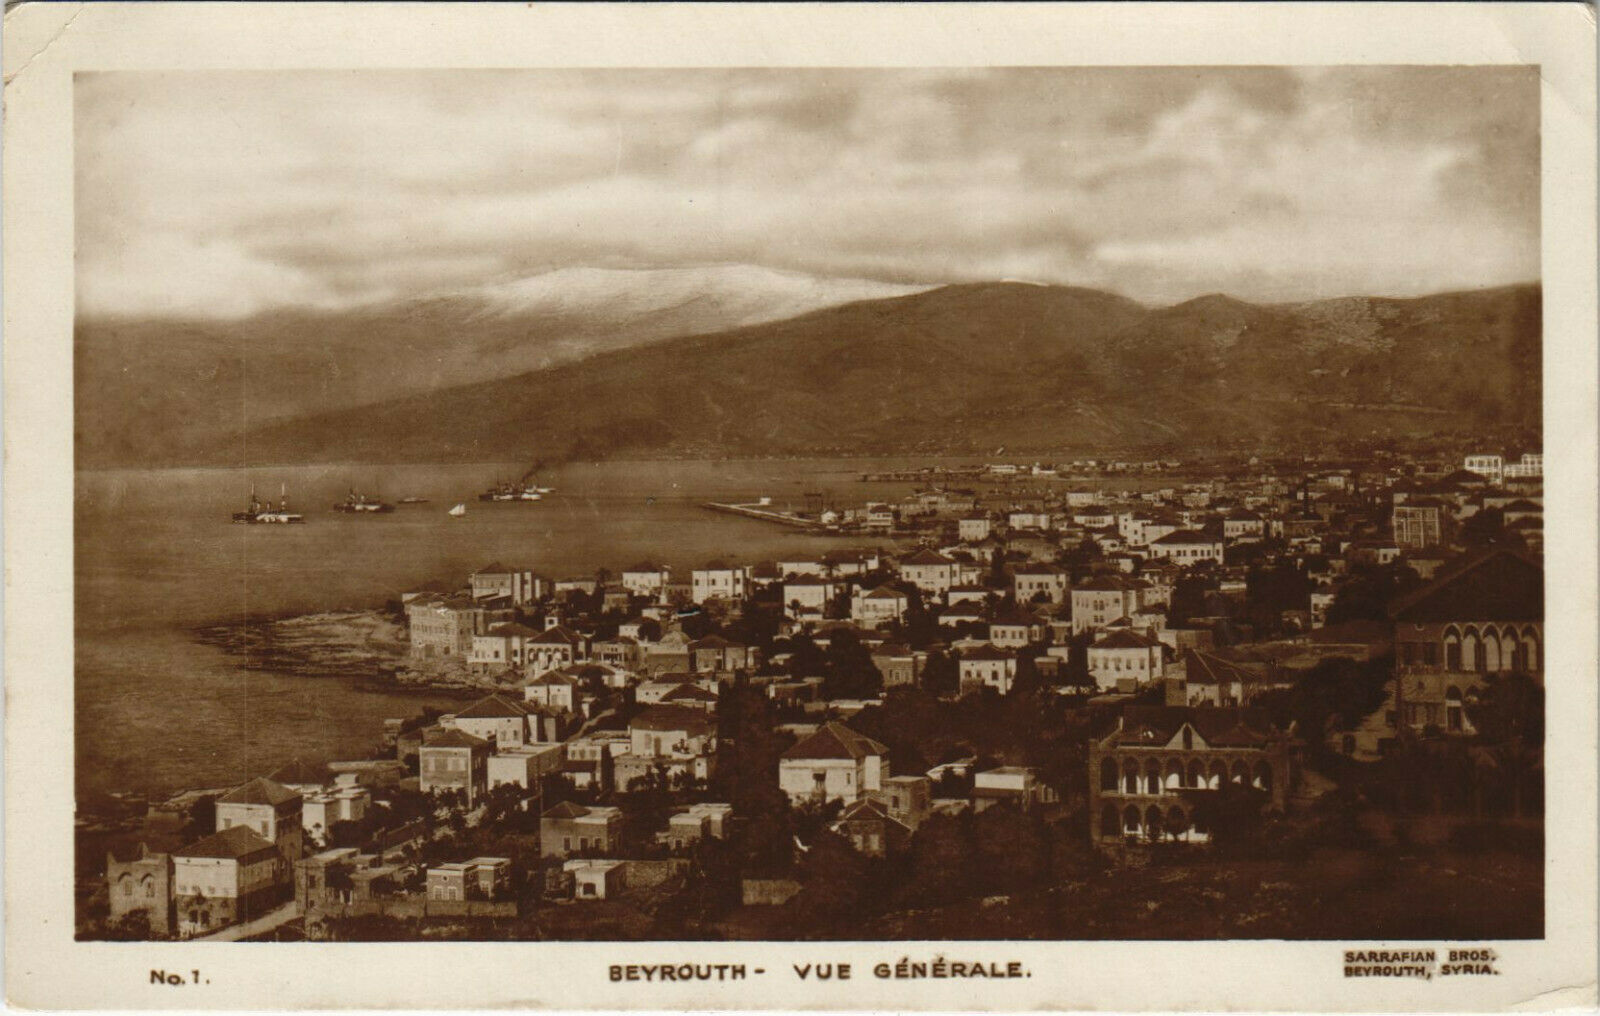 PC CPA LEBANON, BEYROUTH, VUE GENERALE, Vintage REAL PHOTO Postcard (b23145)